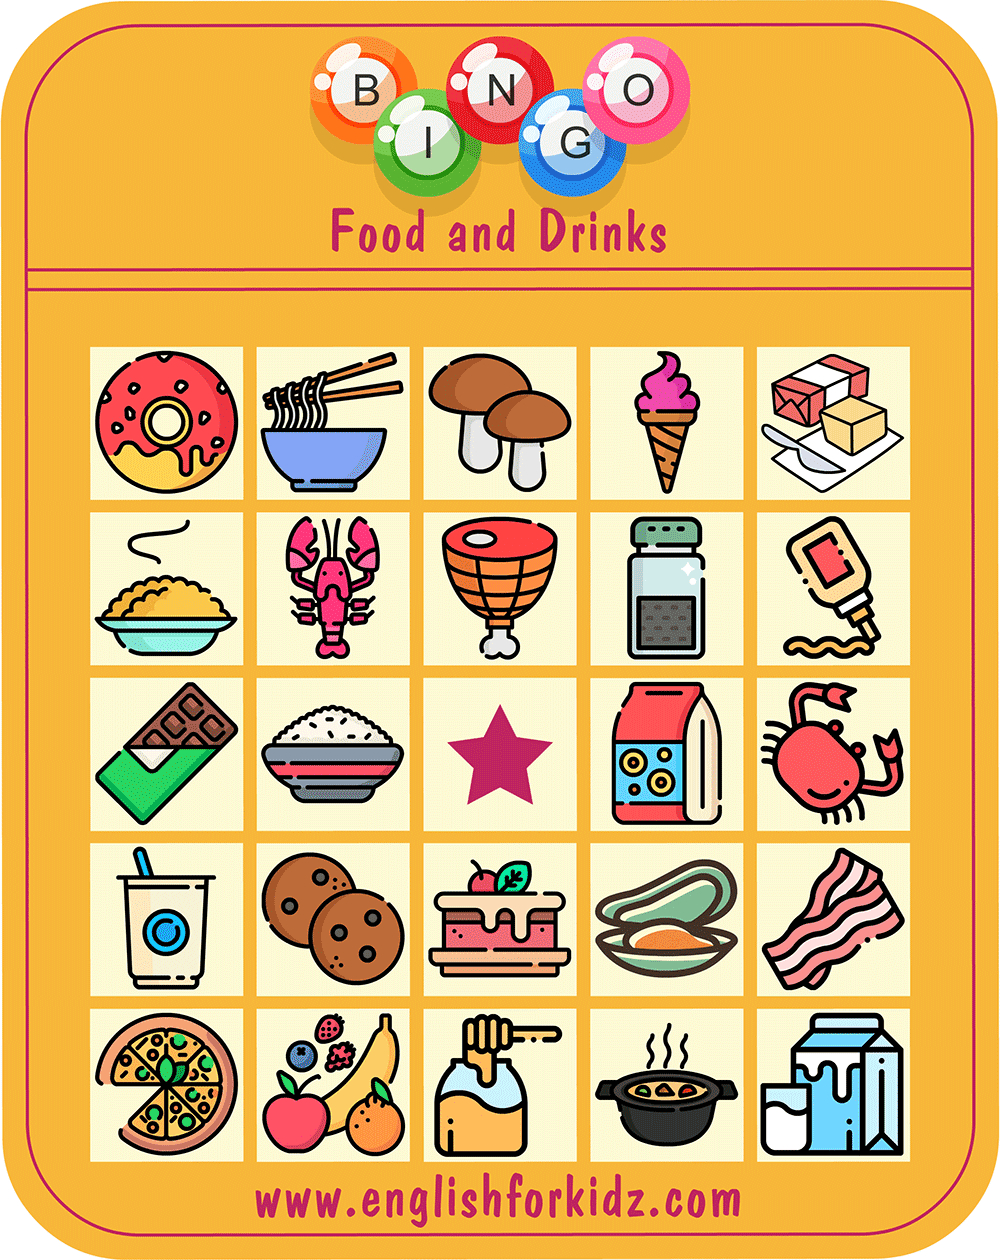 Food & Drinks Bingo Game